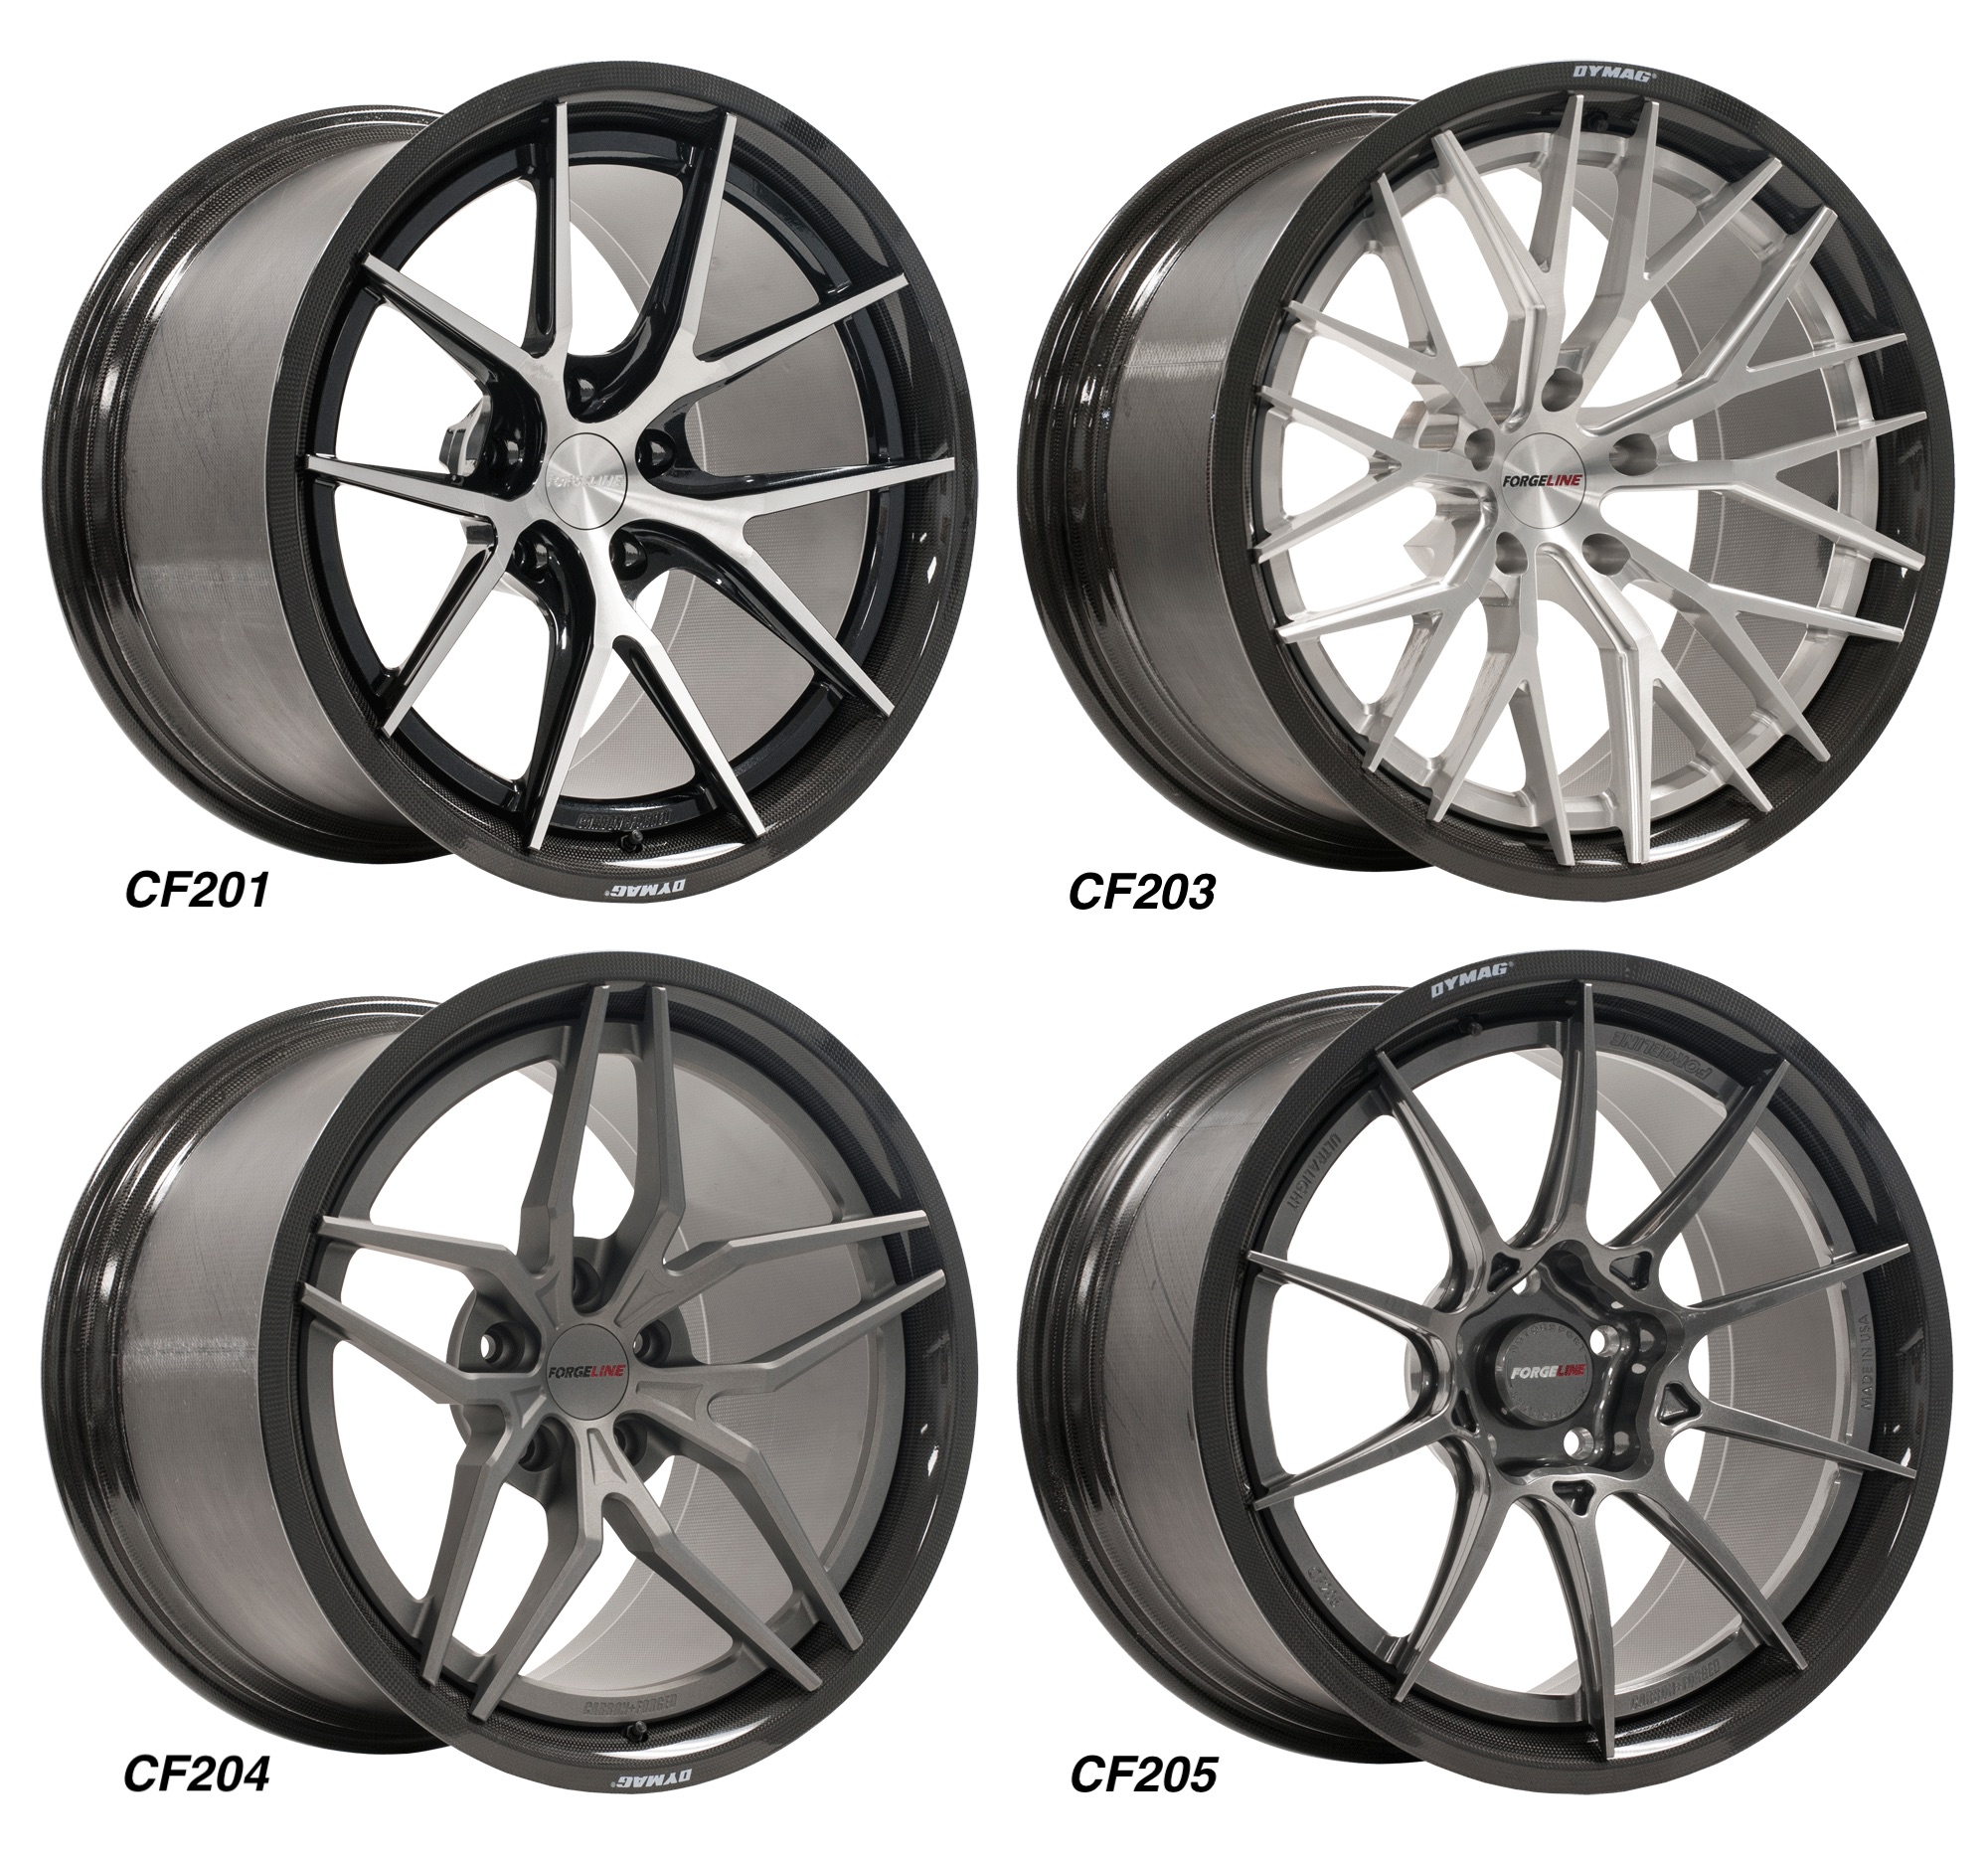 Forgeline Carbon+Forged Series CF201, CF203, CF204, and CF205 Wheels on Dymag Carbon Fiber Barrels